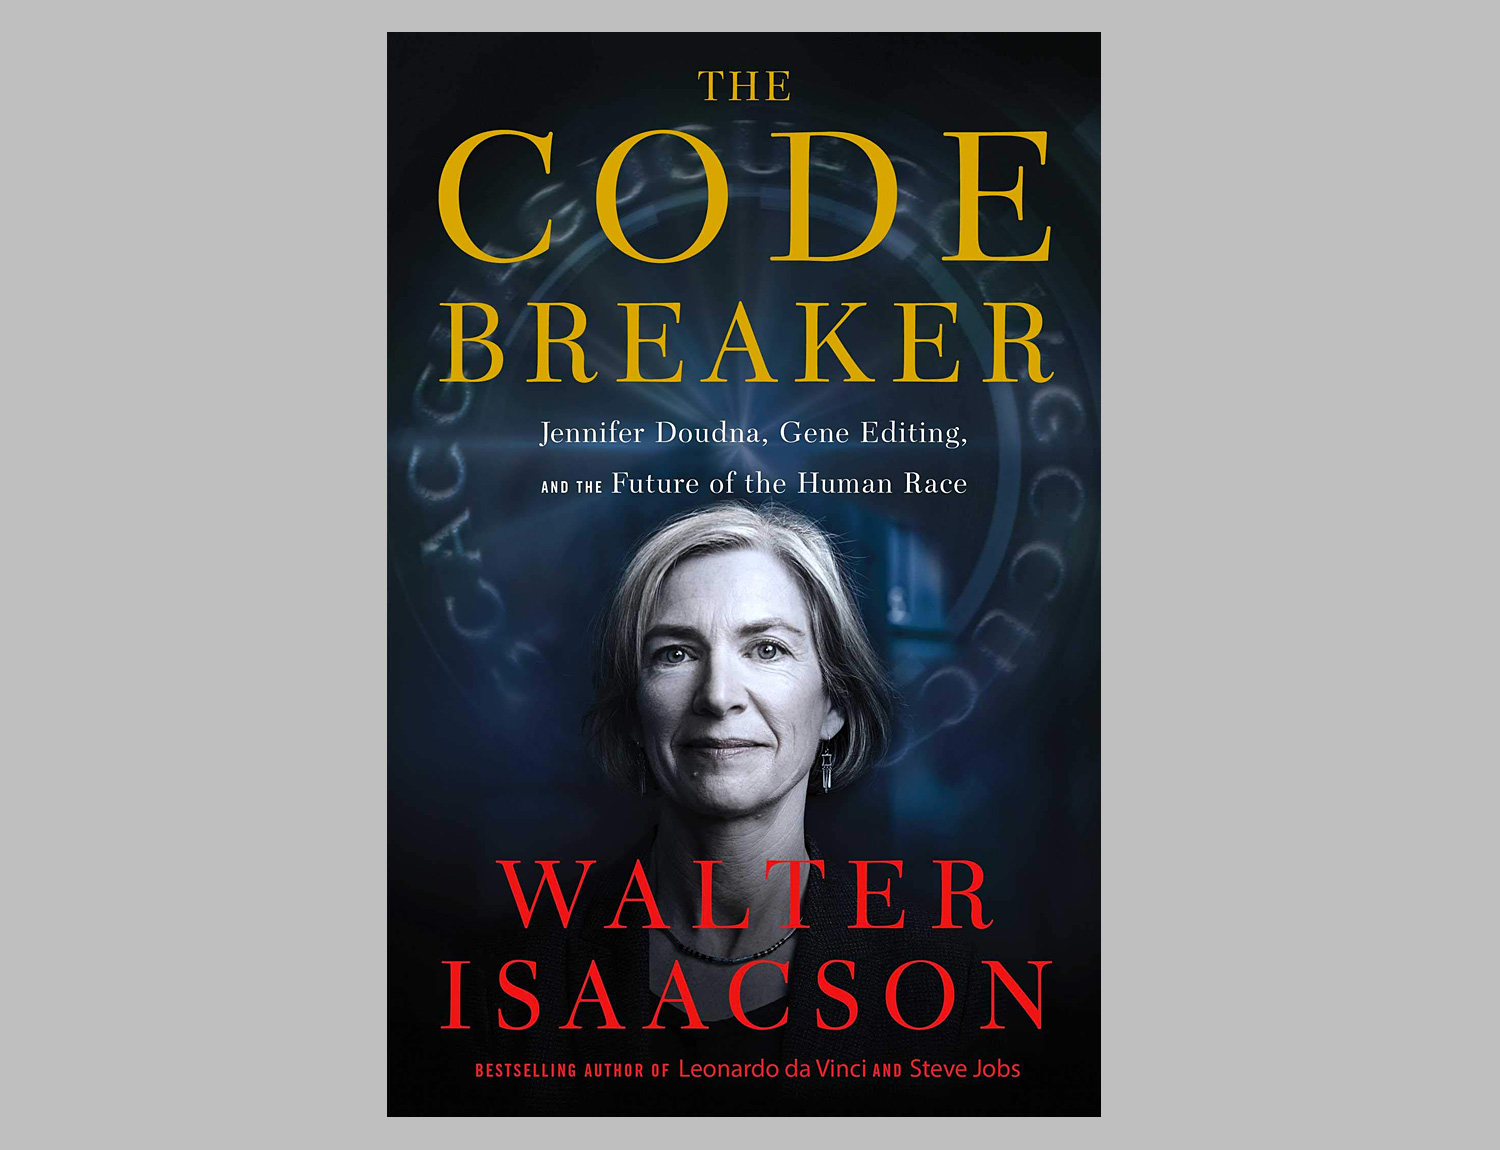 The Code Breaker: Jennifer Doudna, Gene Editing, and the Future of the Human Race at werd.com